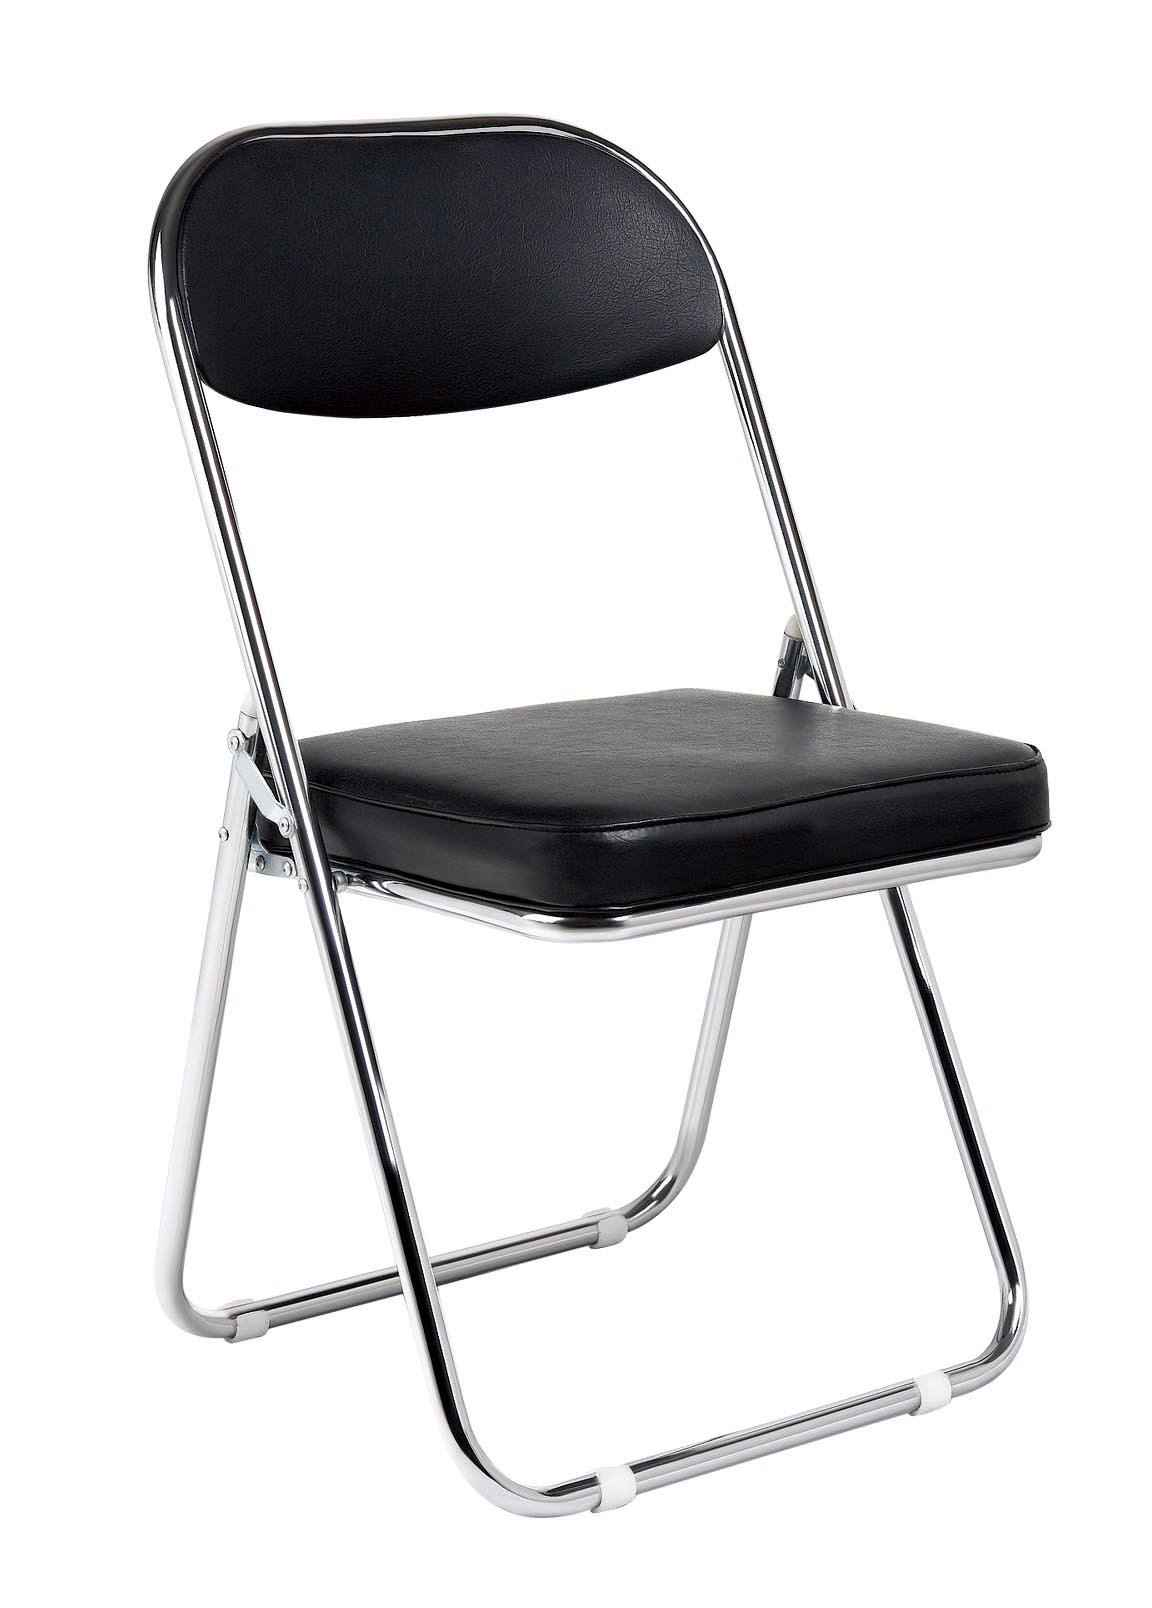 Folding fice Chair Advantage